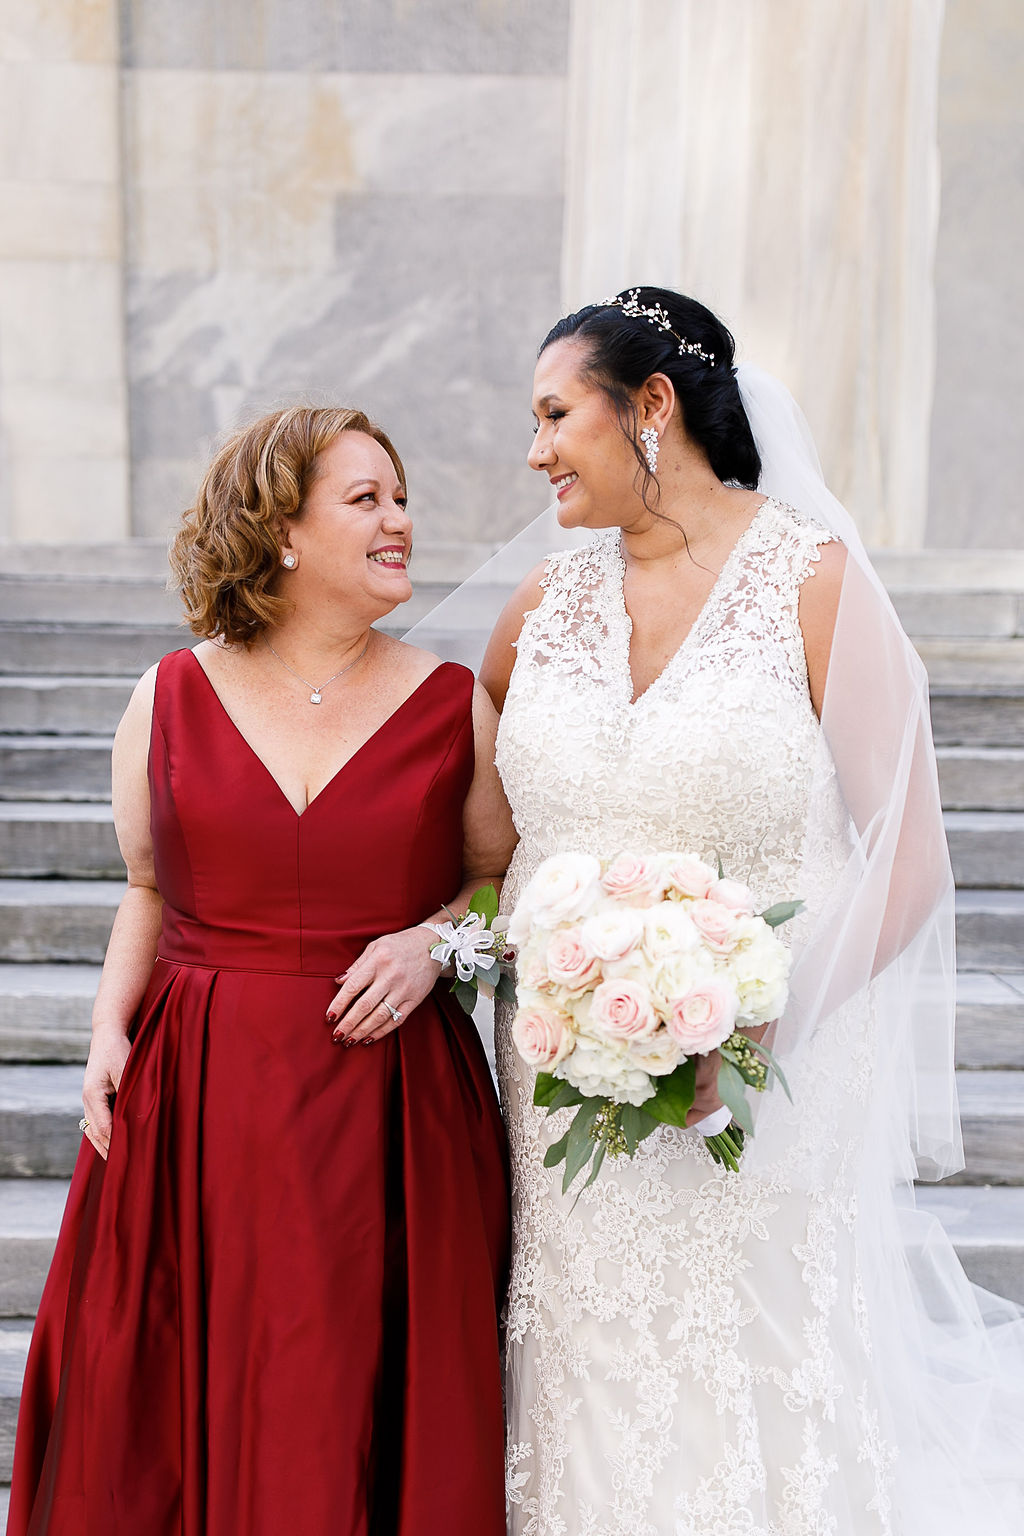 Old City Philly Renaissance Hotel Lesbian Winter Wedding51.jpg